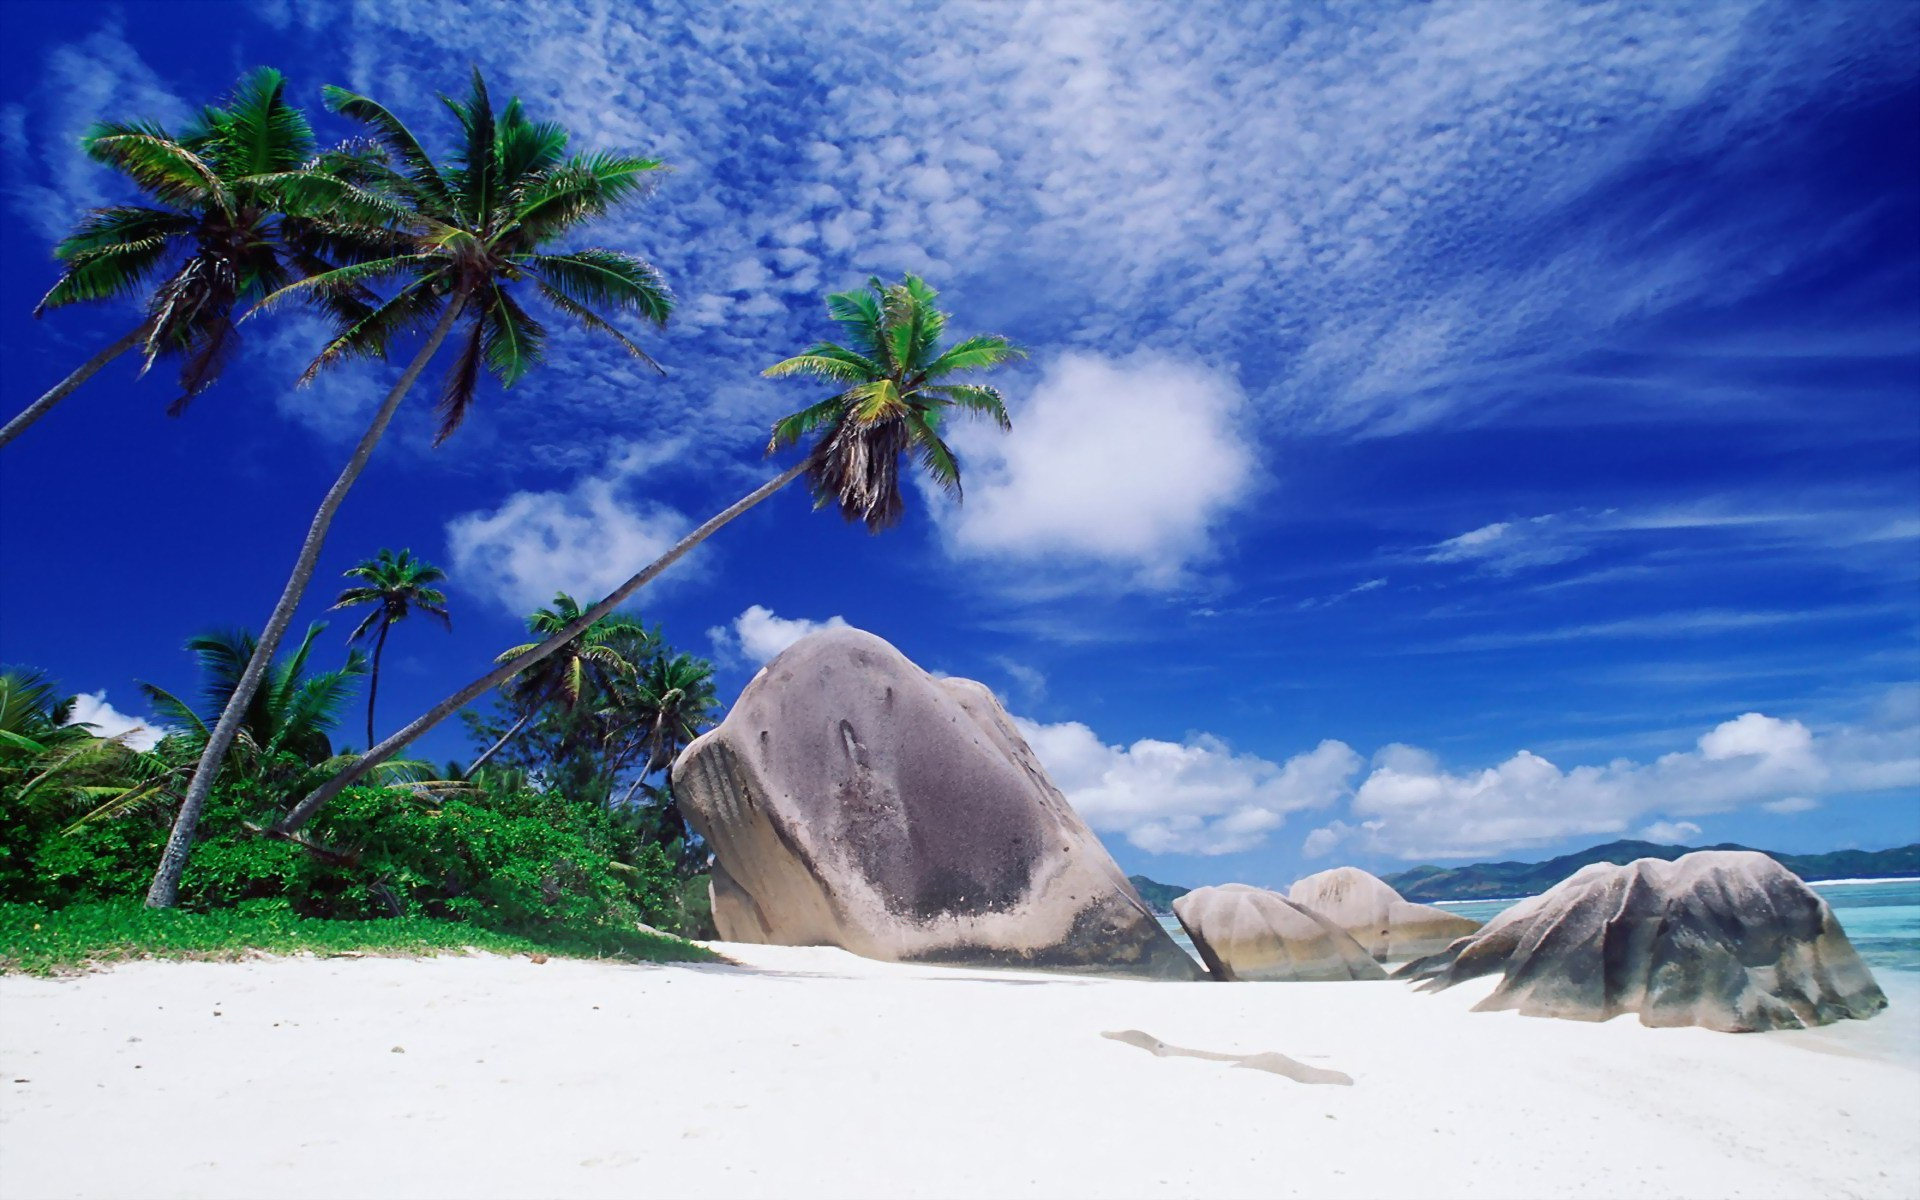 Rocks and palm trees on the beach wallpaper